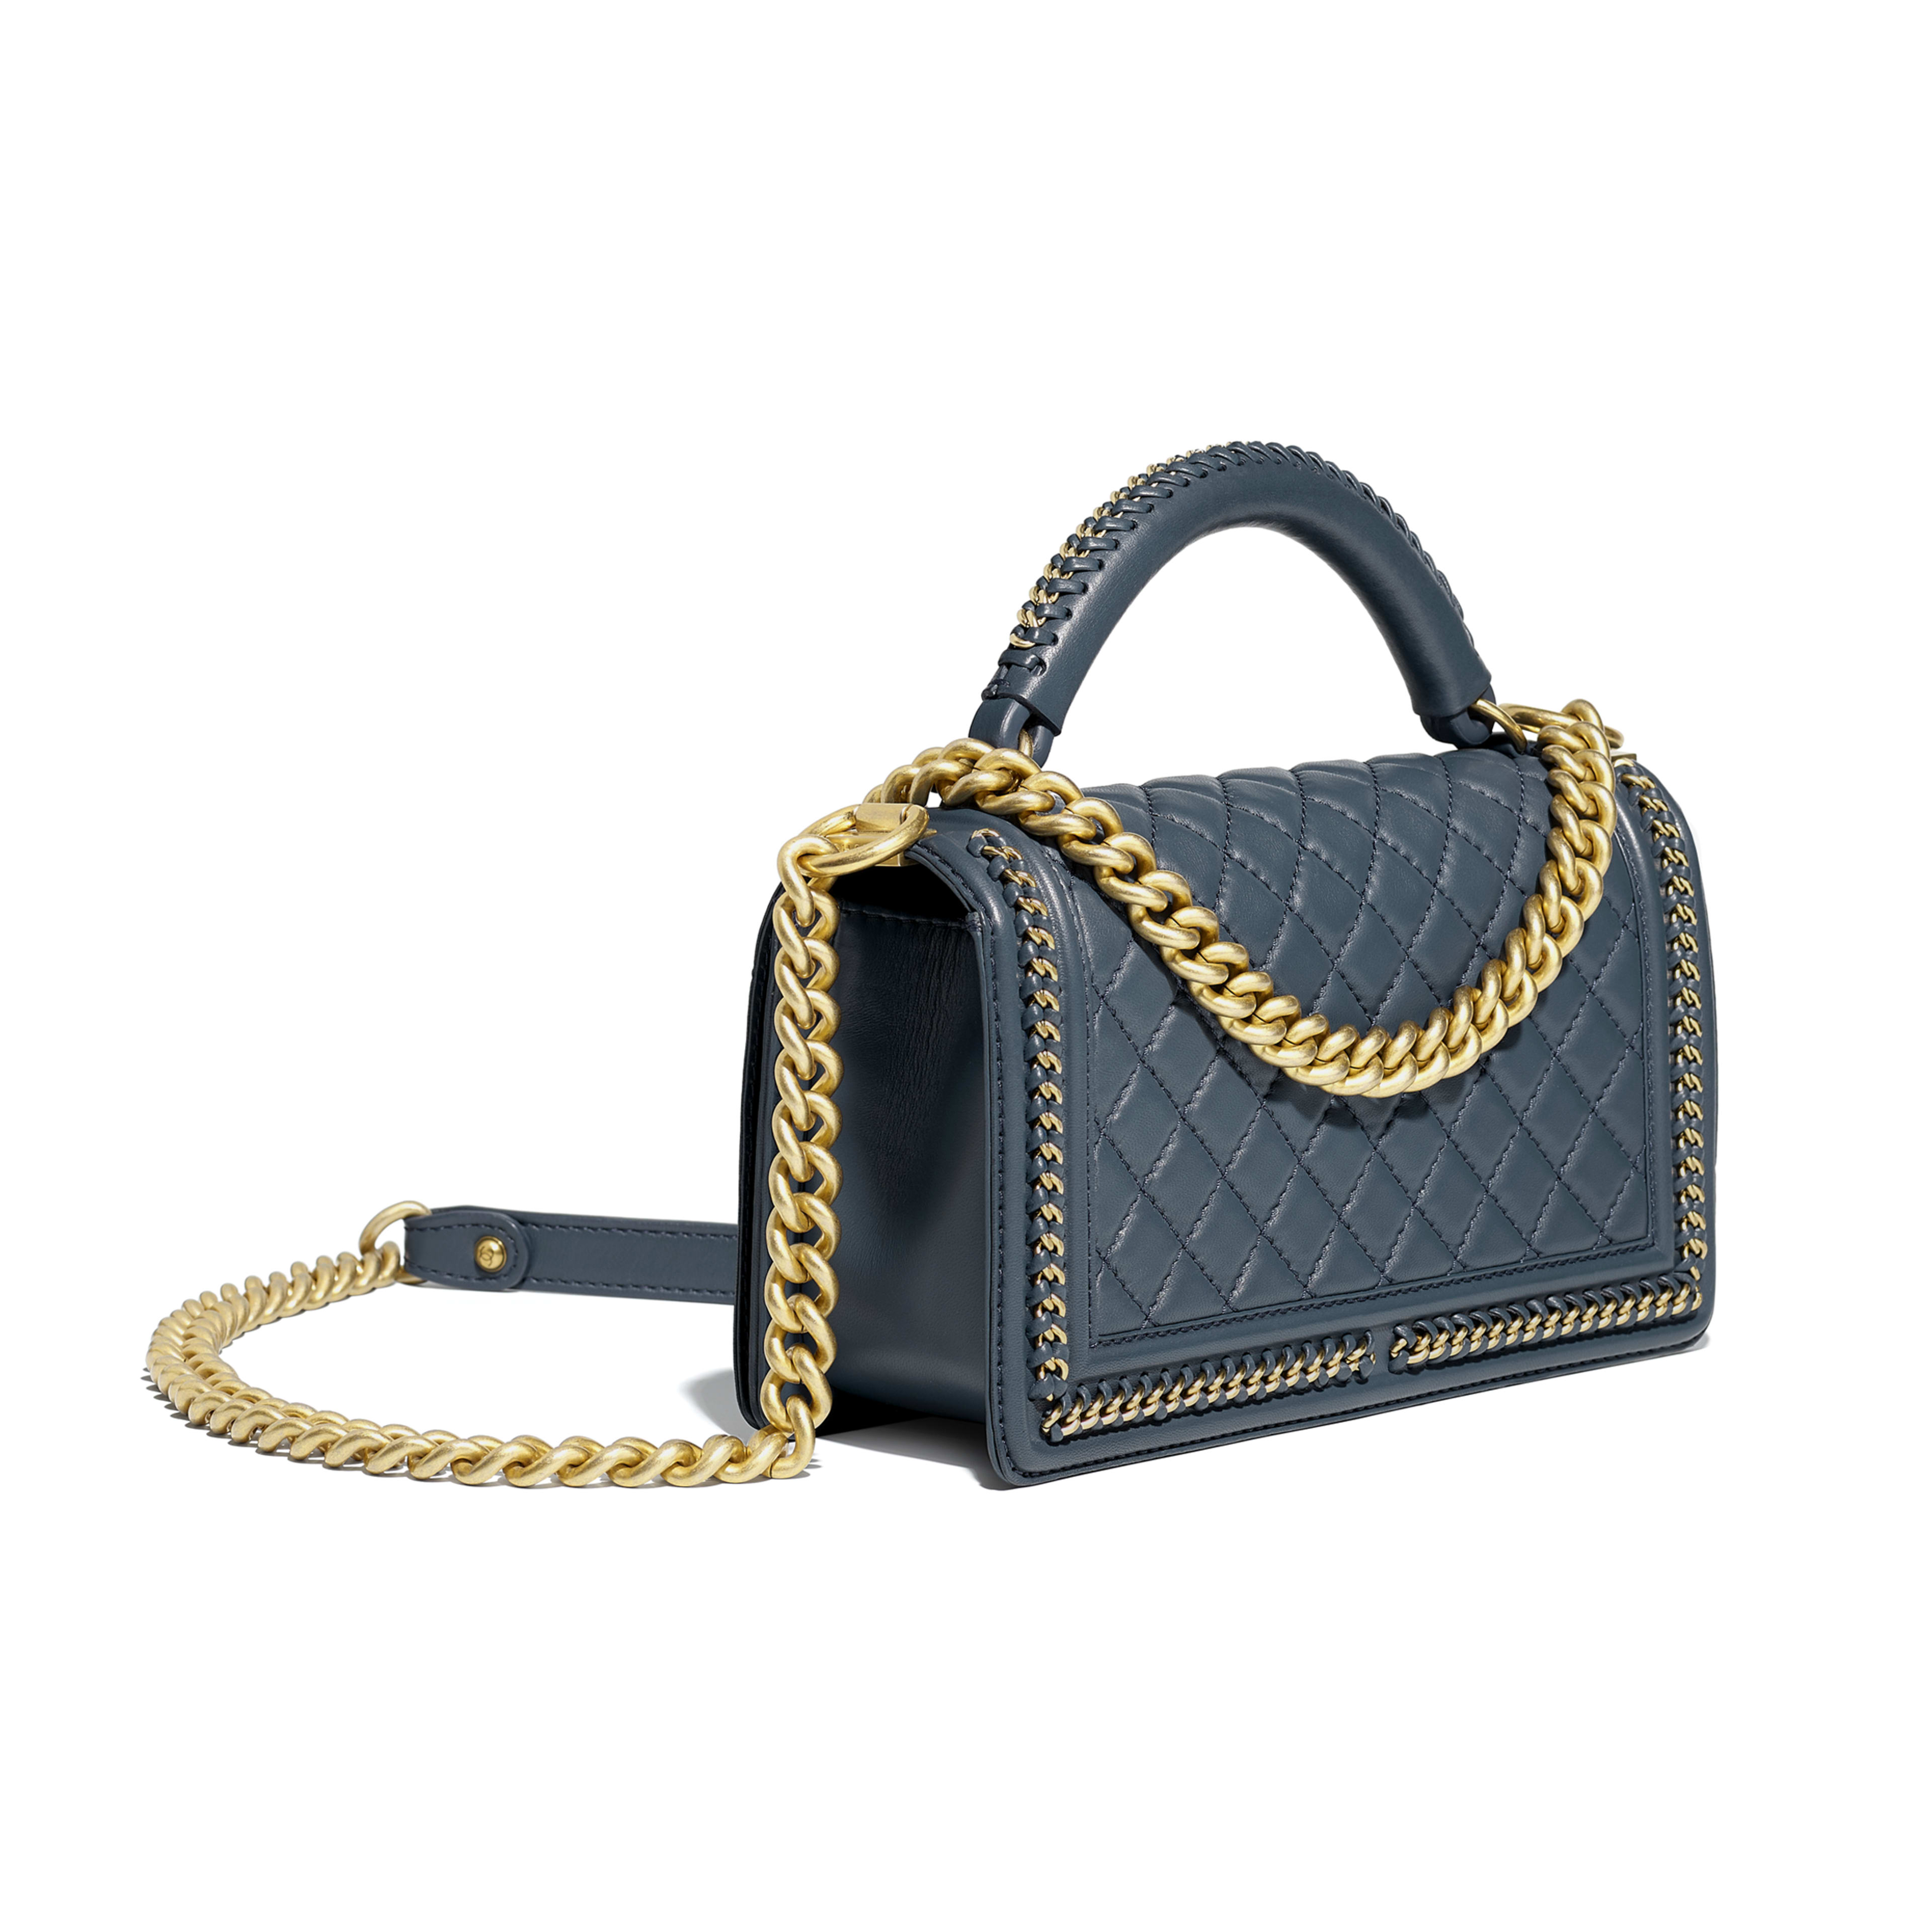 BOY CHANEL Flap Bag with Handle Calfskin & Gold-Tone Metal Blue -                                            view 3 - see full sized version